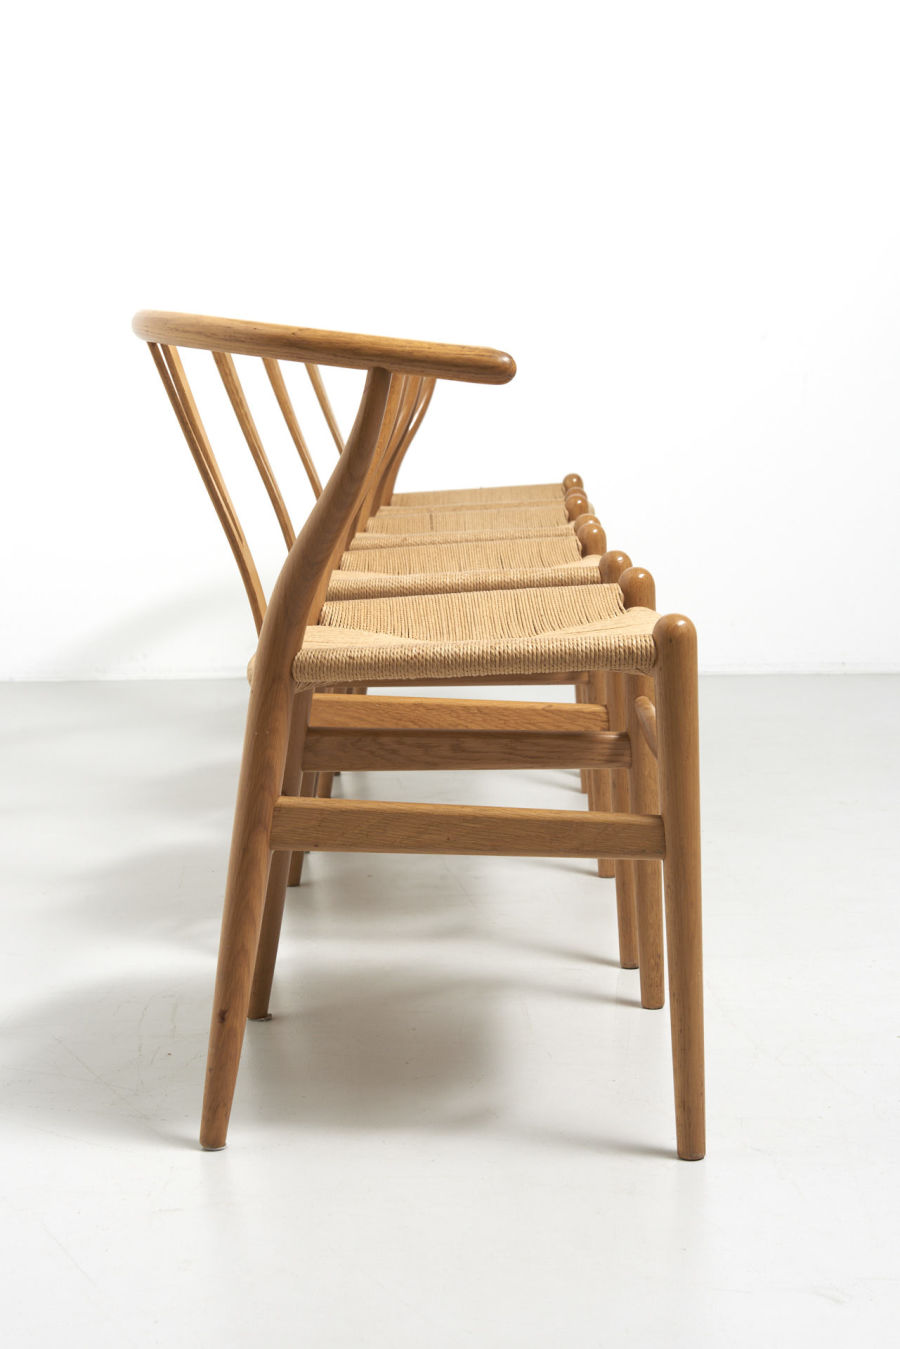 modestfurniture-vintage-1957-wishbone-chairs-hans-wegner02